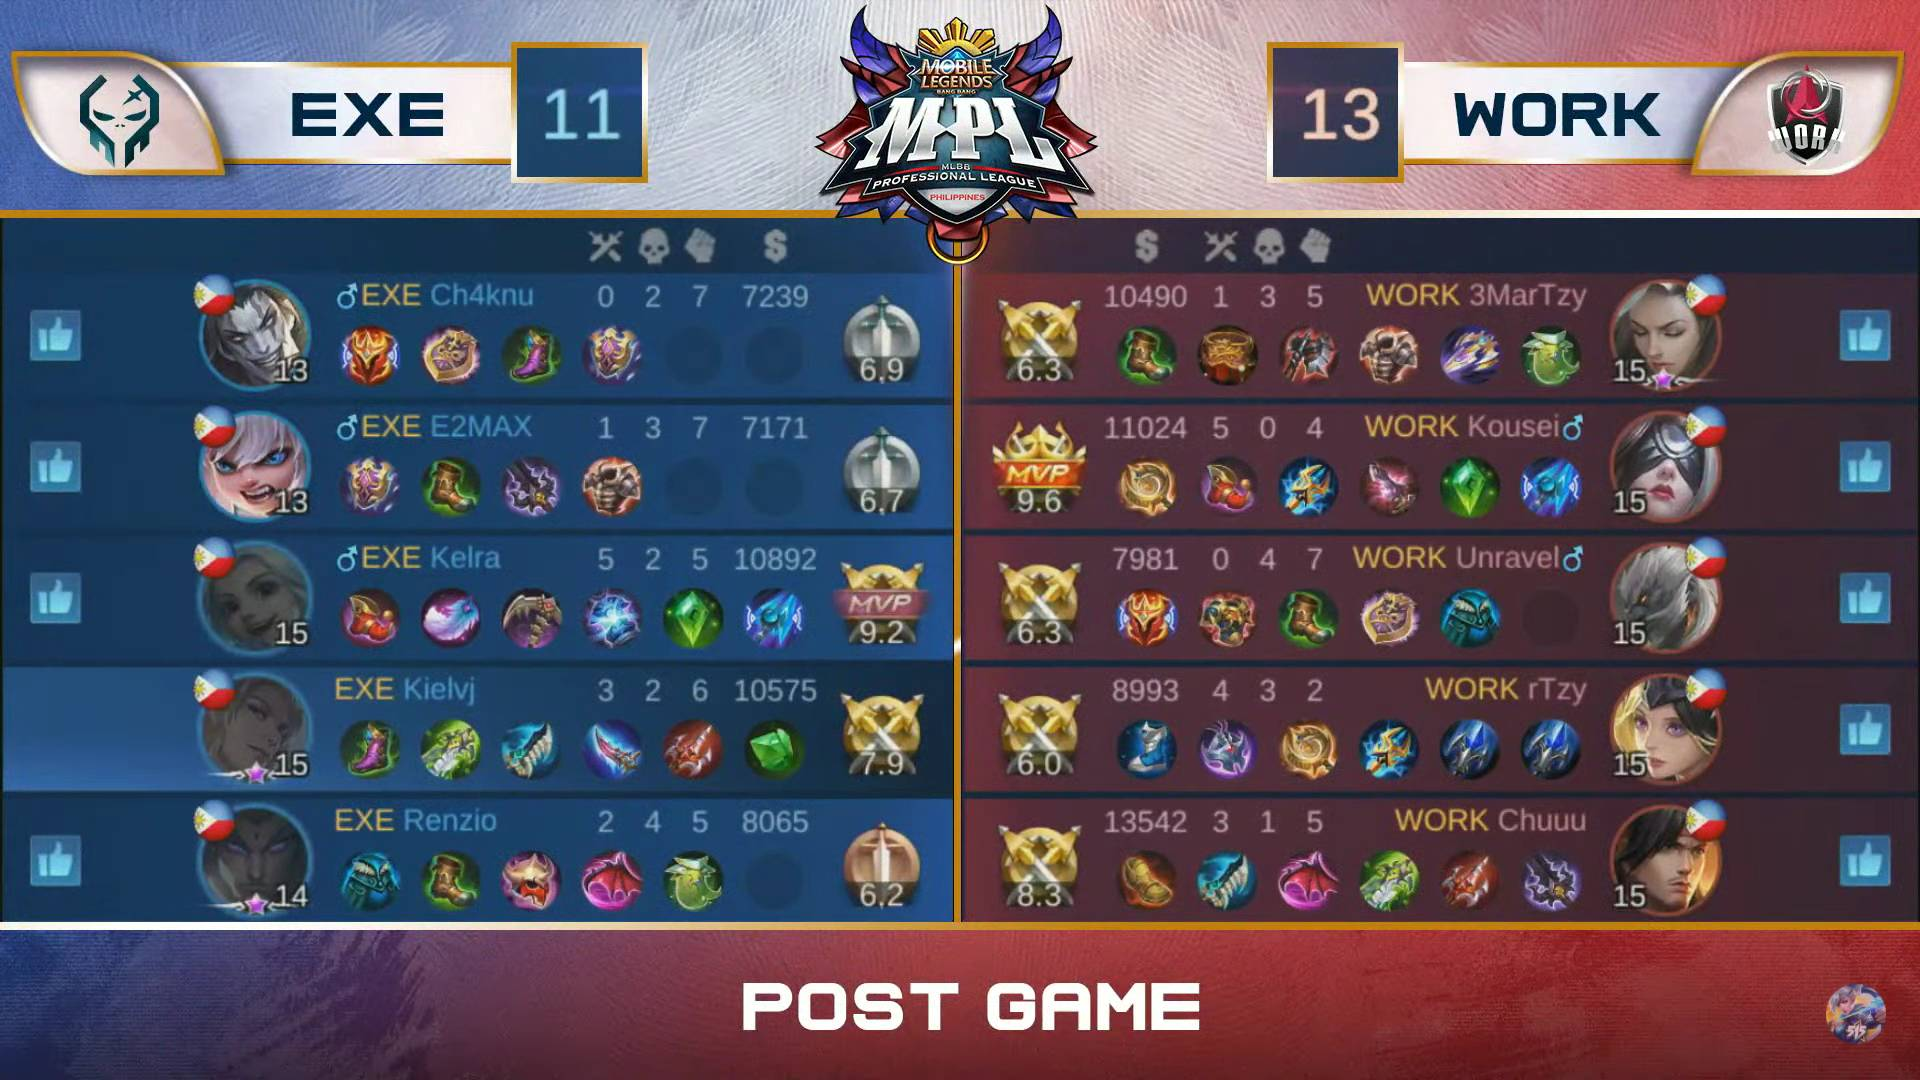 MPL-PH-Season-7-Work-Auster-def-Execration-Game-2 Work Auster pulls epic come-from-behind win vs Execration in MPL PH ESports Mobile Legends MPL-PH News  - philippine sports news